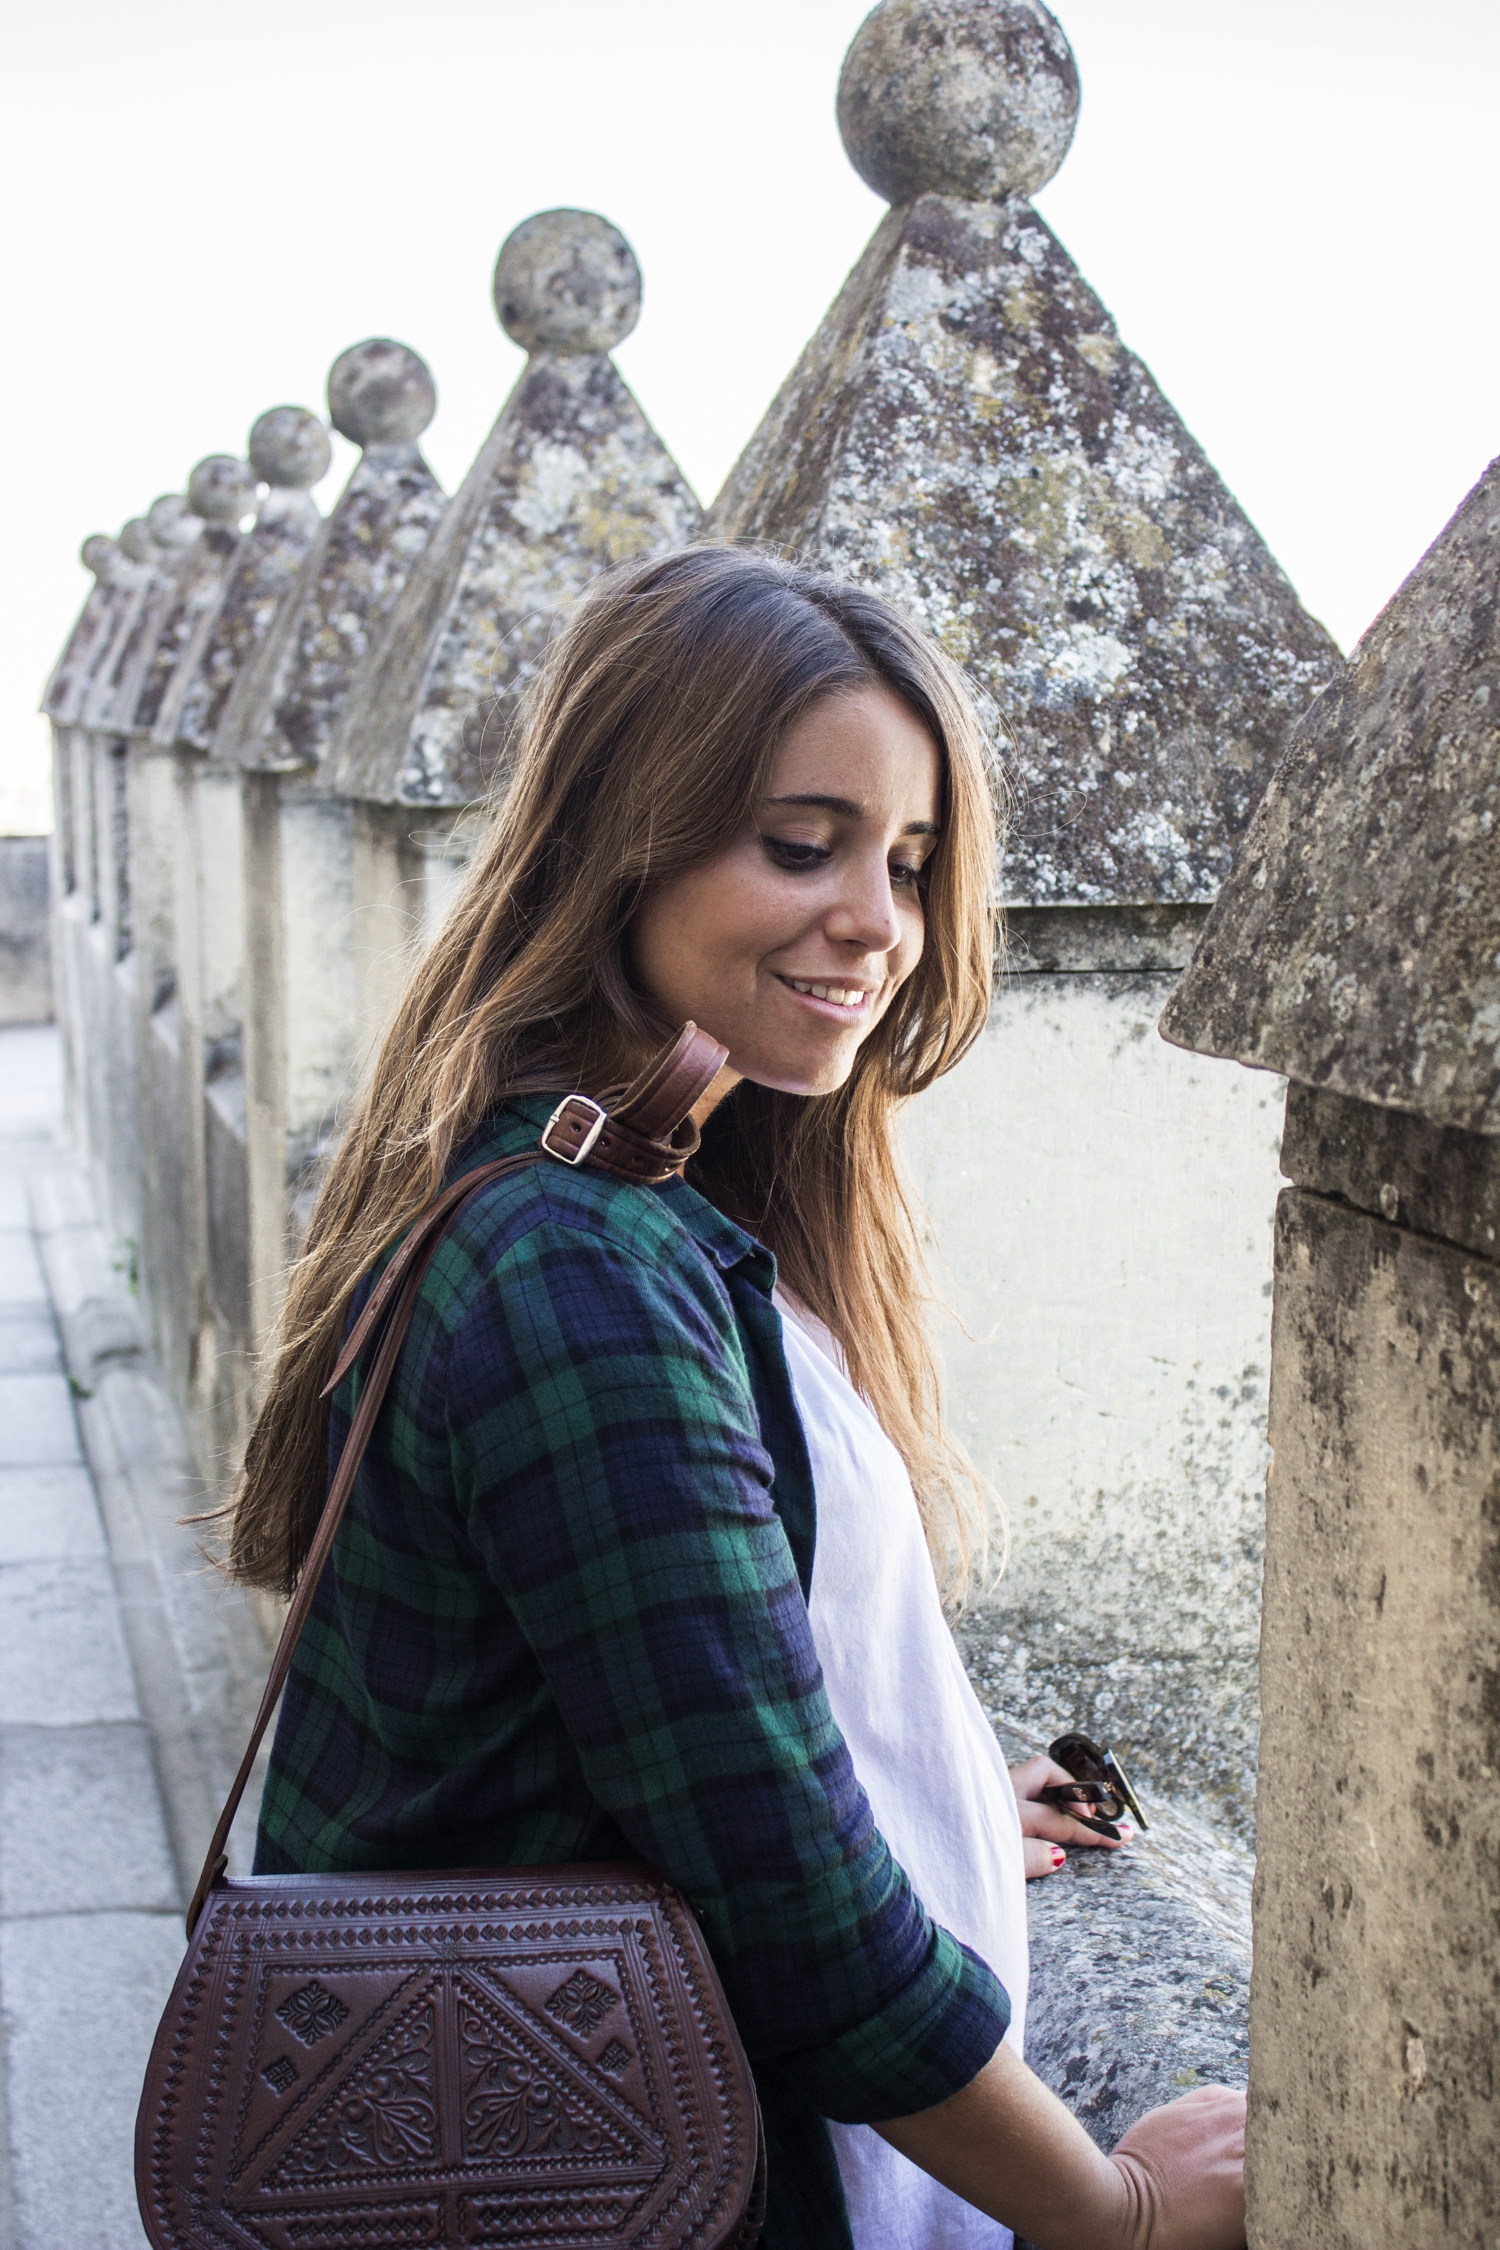 loreto-made-in-style-tartan-shirt-camisa-cuadros-bolso-cuero-vans-leather-authentic-13